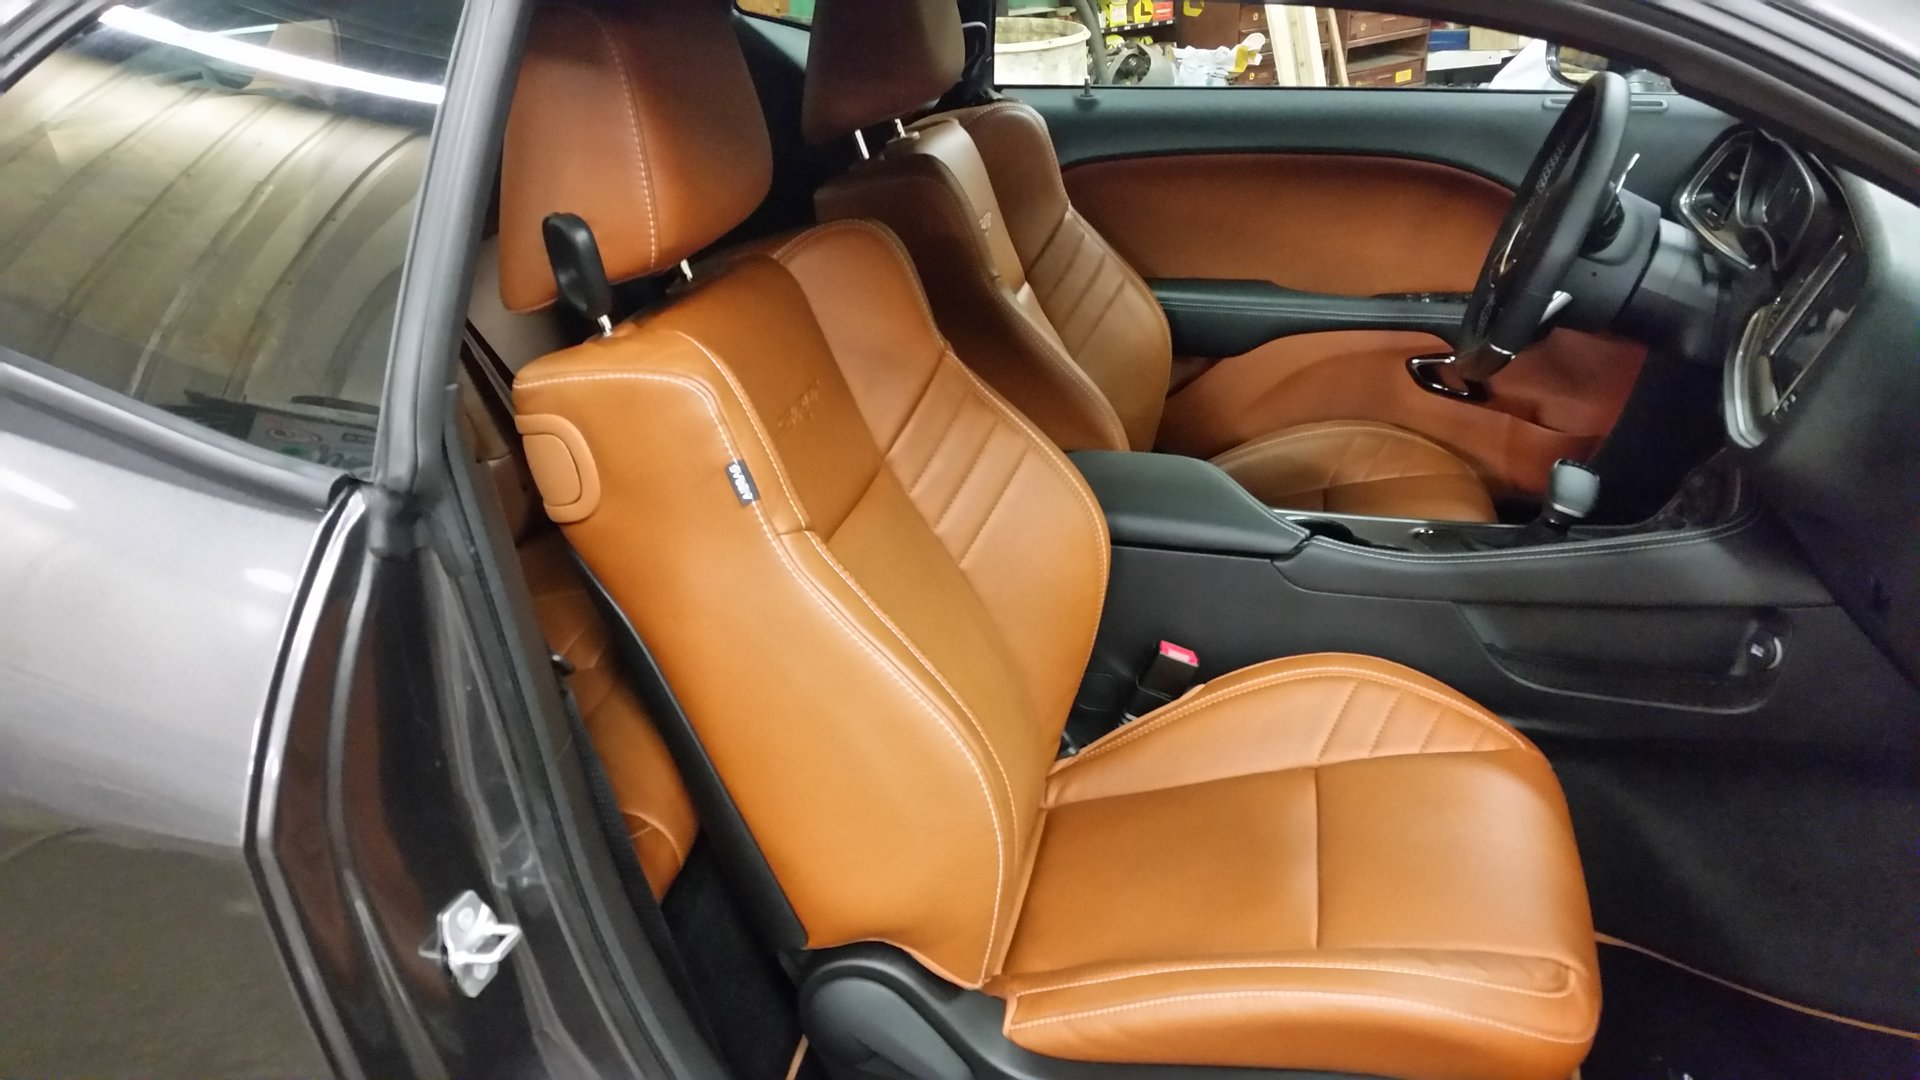 Why Don T More Hellcats Have The Tan Interior Page 3 Srt Hellcat Forum